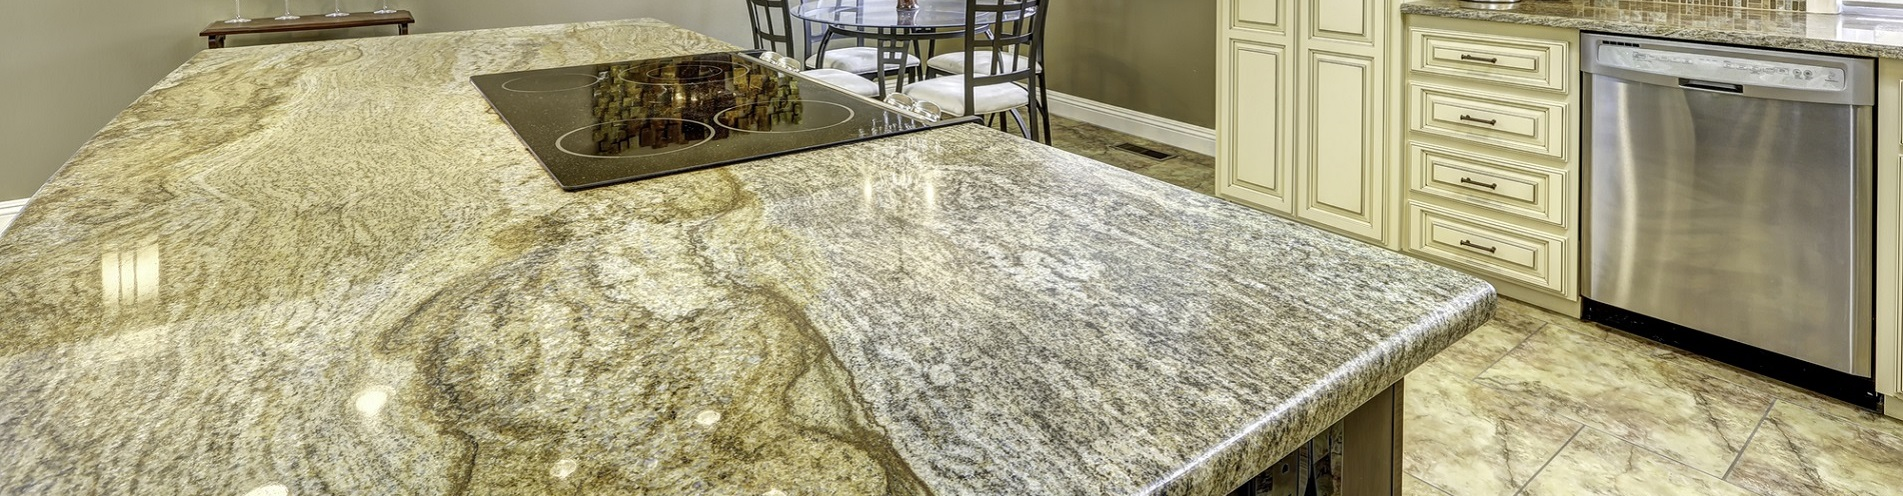 com giallo fireplacecarolina ornamental cabinets countertop countertops granite white with sealing pin